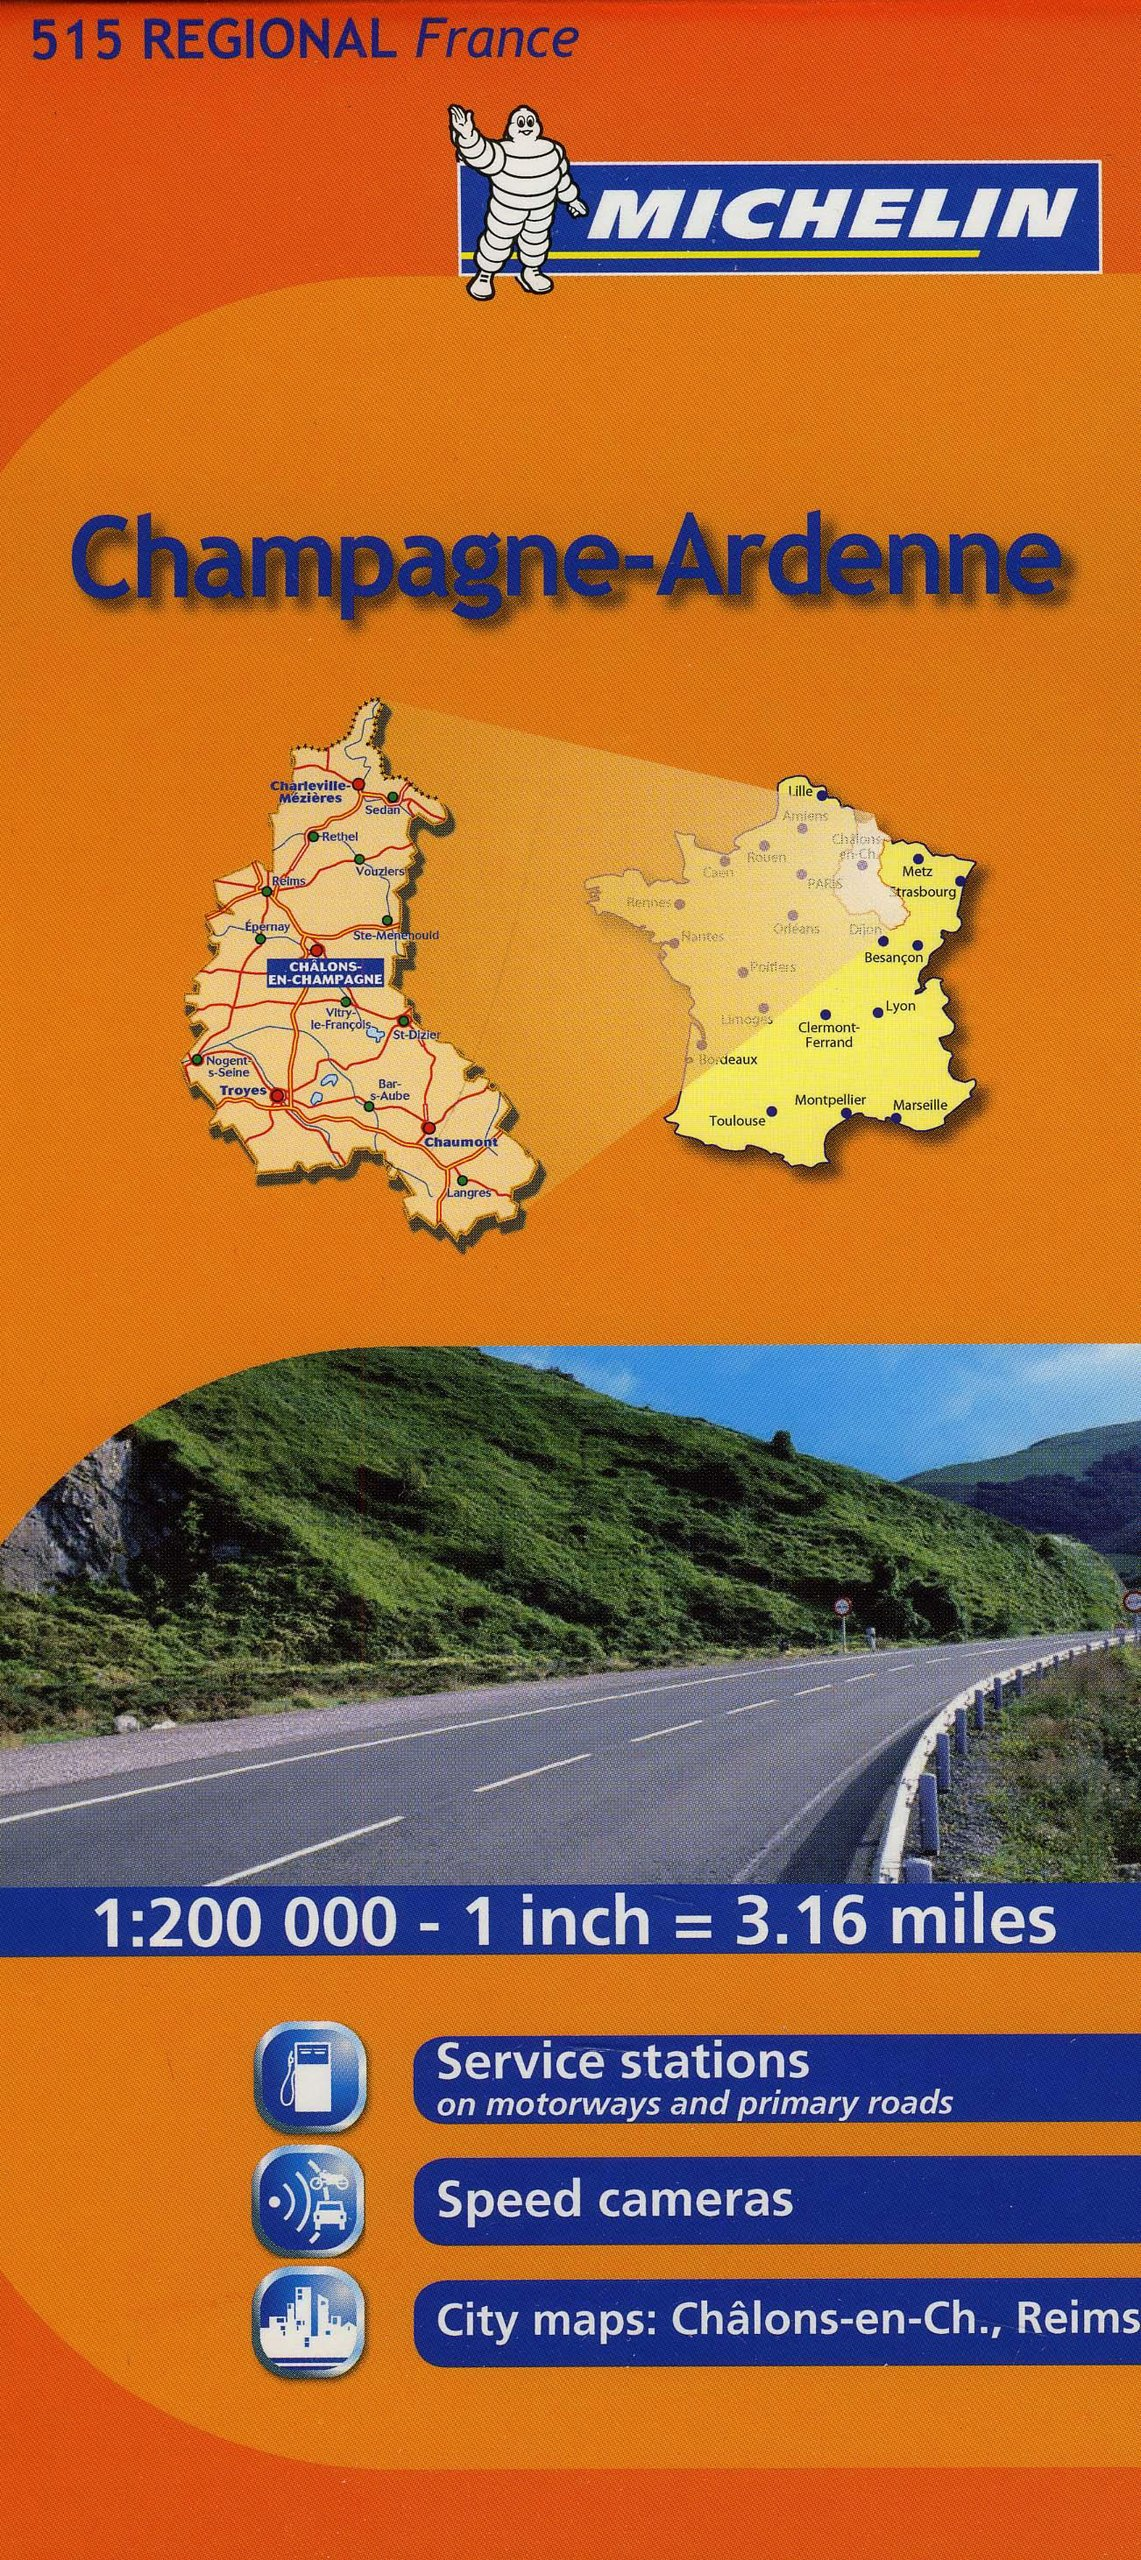 Regional Map Of France In English.Michelin Map France Champagne Ardenne 515 Maps Regional Michelin